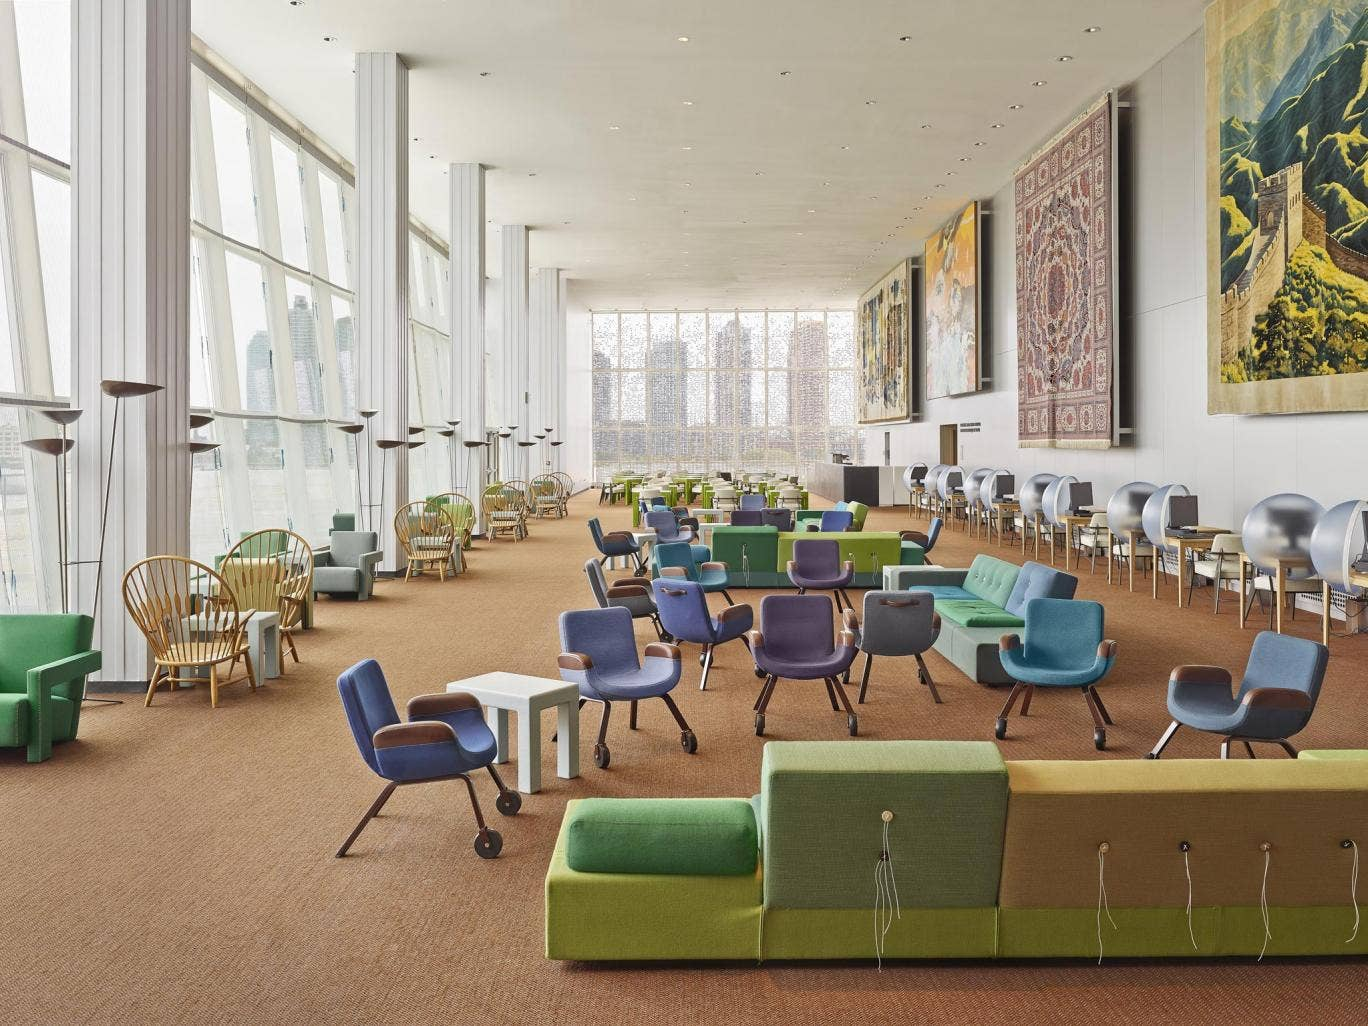 Interior for United Nations North Delegates' Lounge, New York – Designed by Hella Jongerius, together with Rem Koolhaas, Irma Boom, Gabriel Lester and Louise Schouwenberg